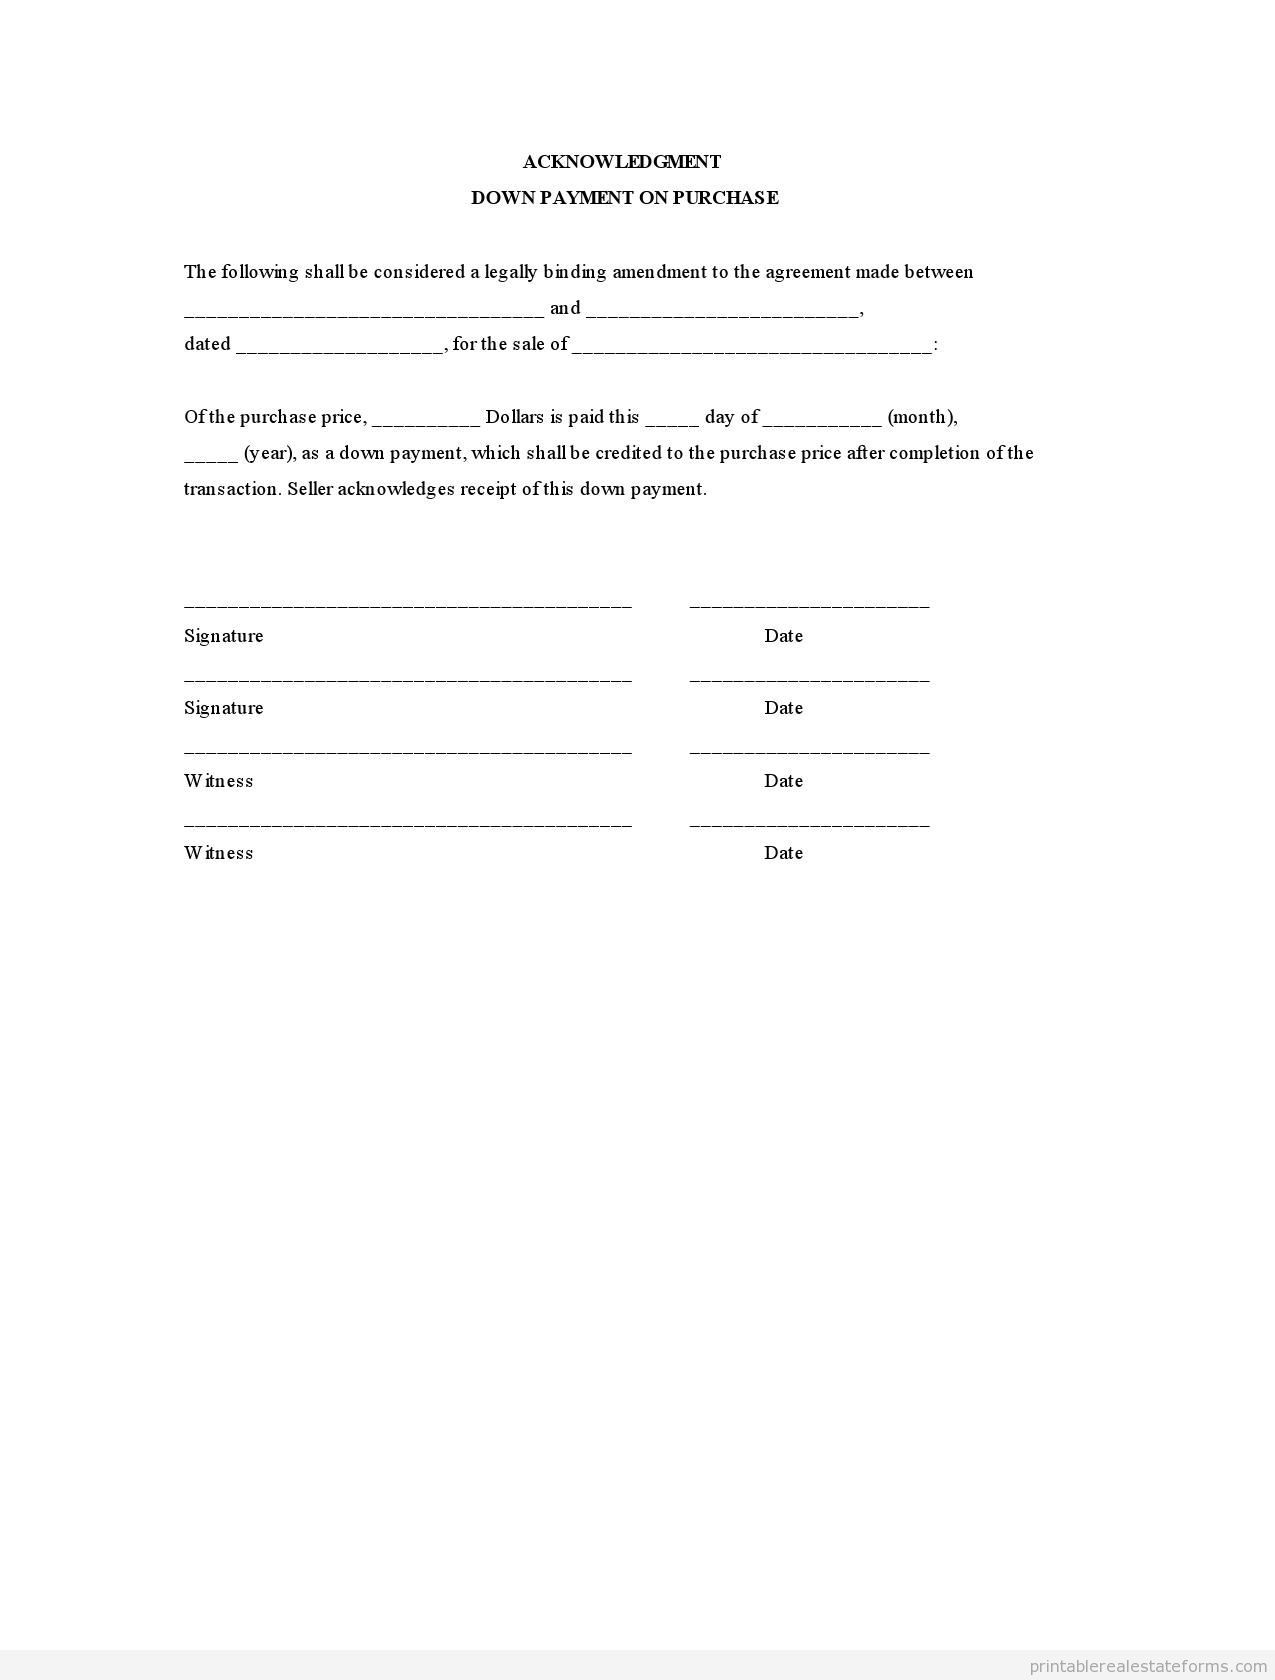 Sample Printable Acknowledgment Down Payment On Purchase Form Legal Forms Purchase Form Real Estate Forms